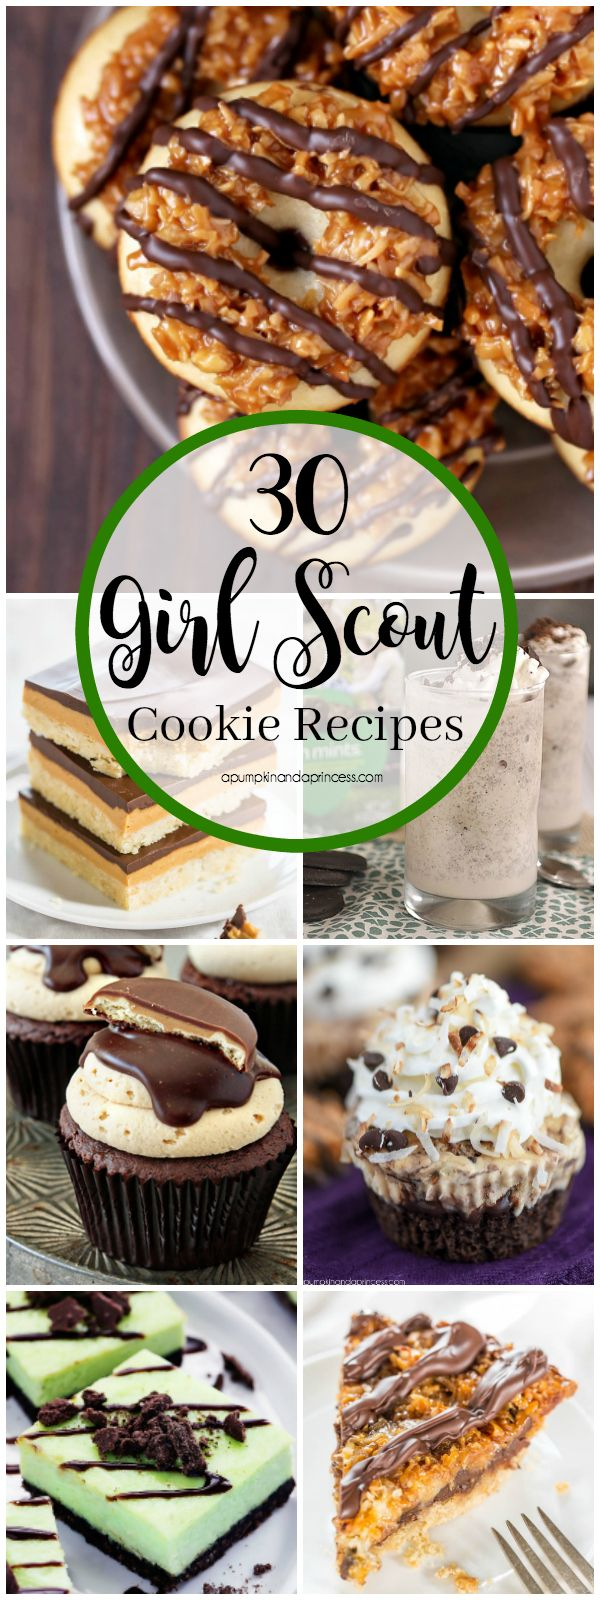 30 Girl Scout Cookie Recipes